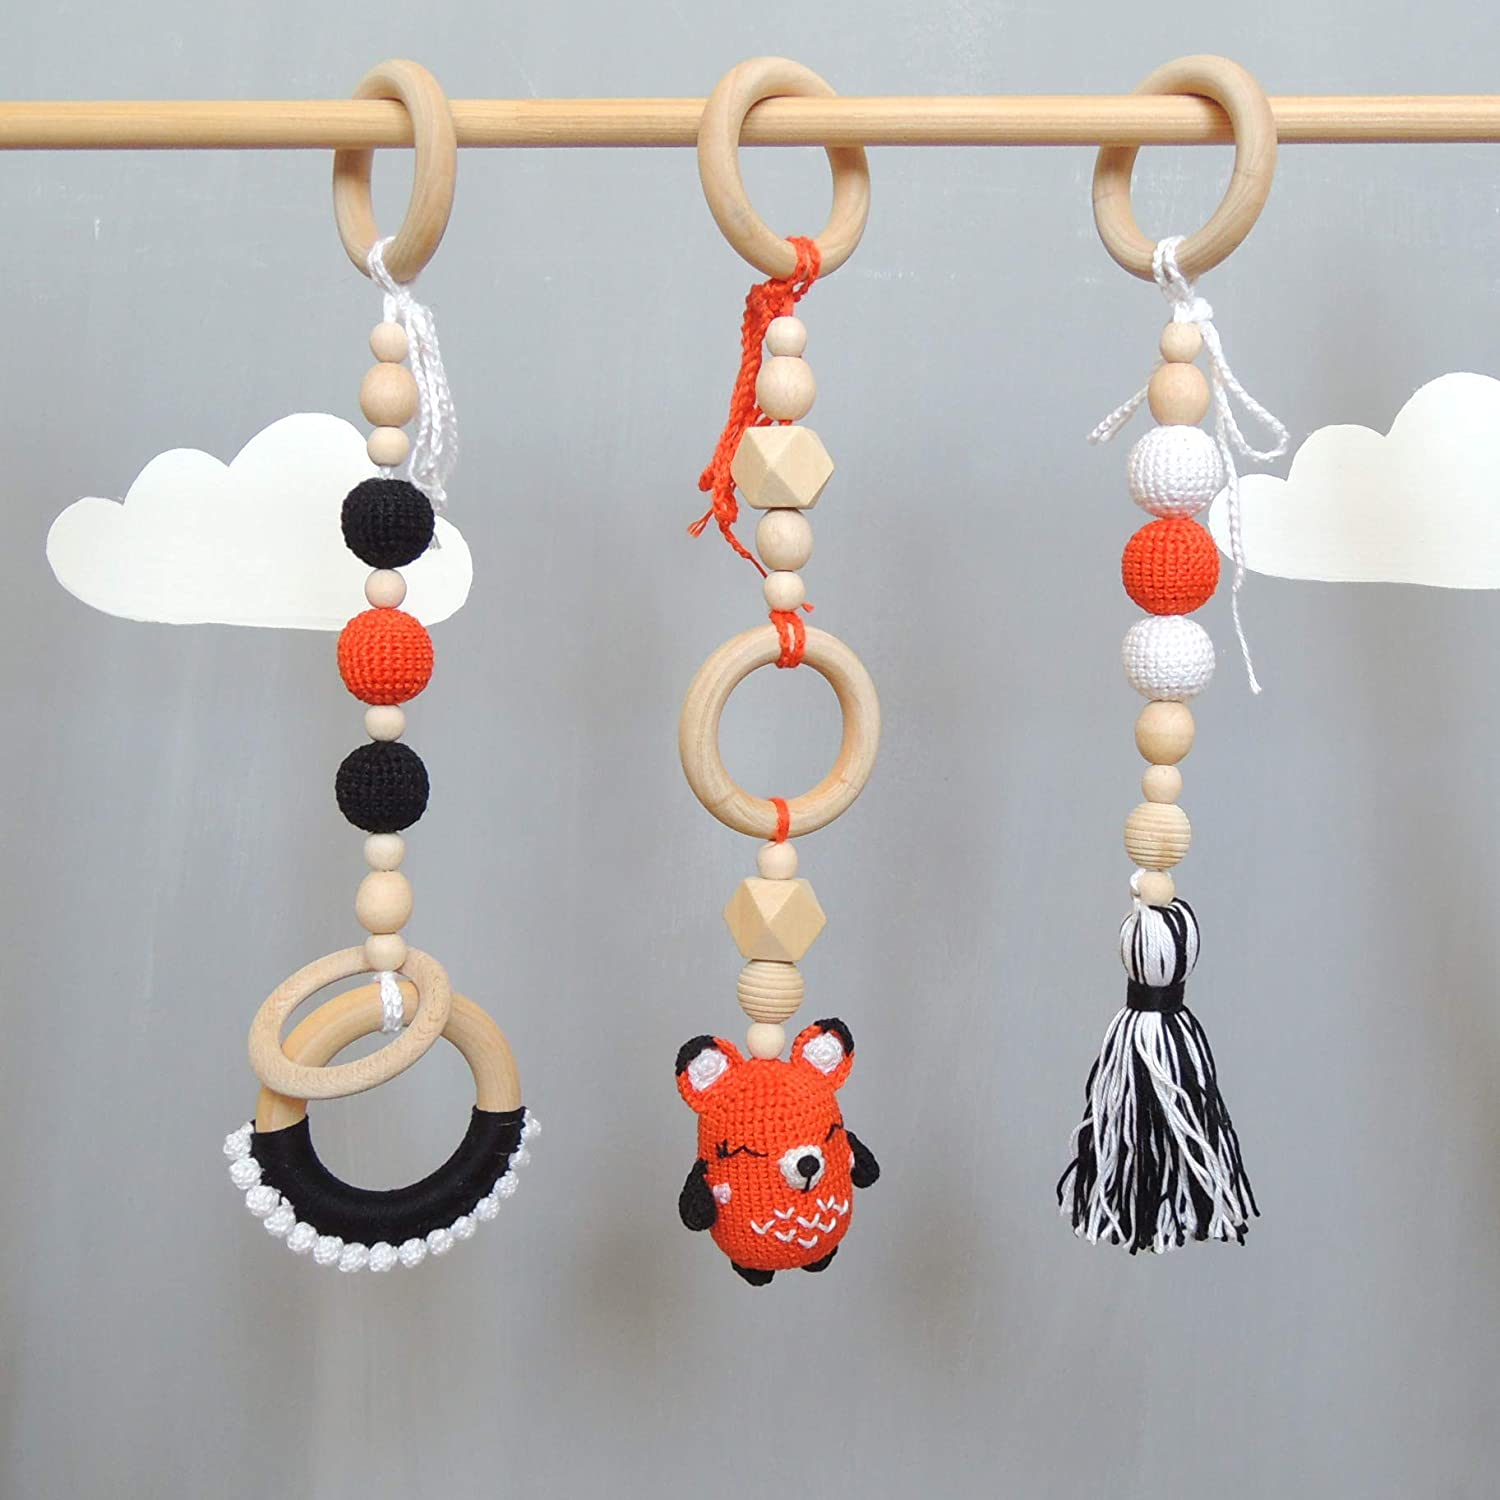 Set of 3 Hanging Toys for Wooden Baby Gym, Stroller Toy, Pram Chain, Car Seat Accessories, Baby Mobile, Rattle Animal Fox, Teething Ring, Shower Gift for Girl or Boy